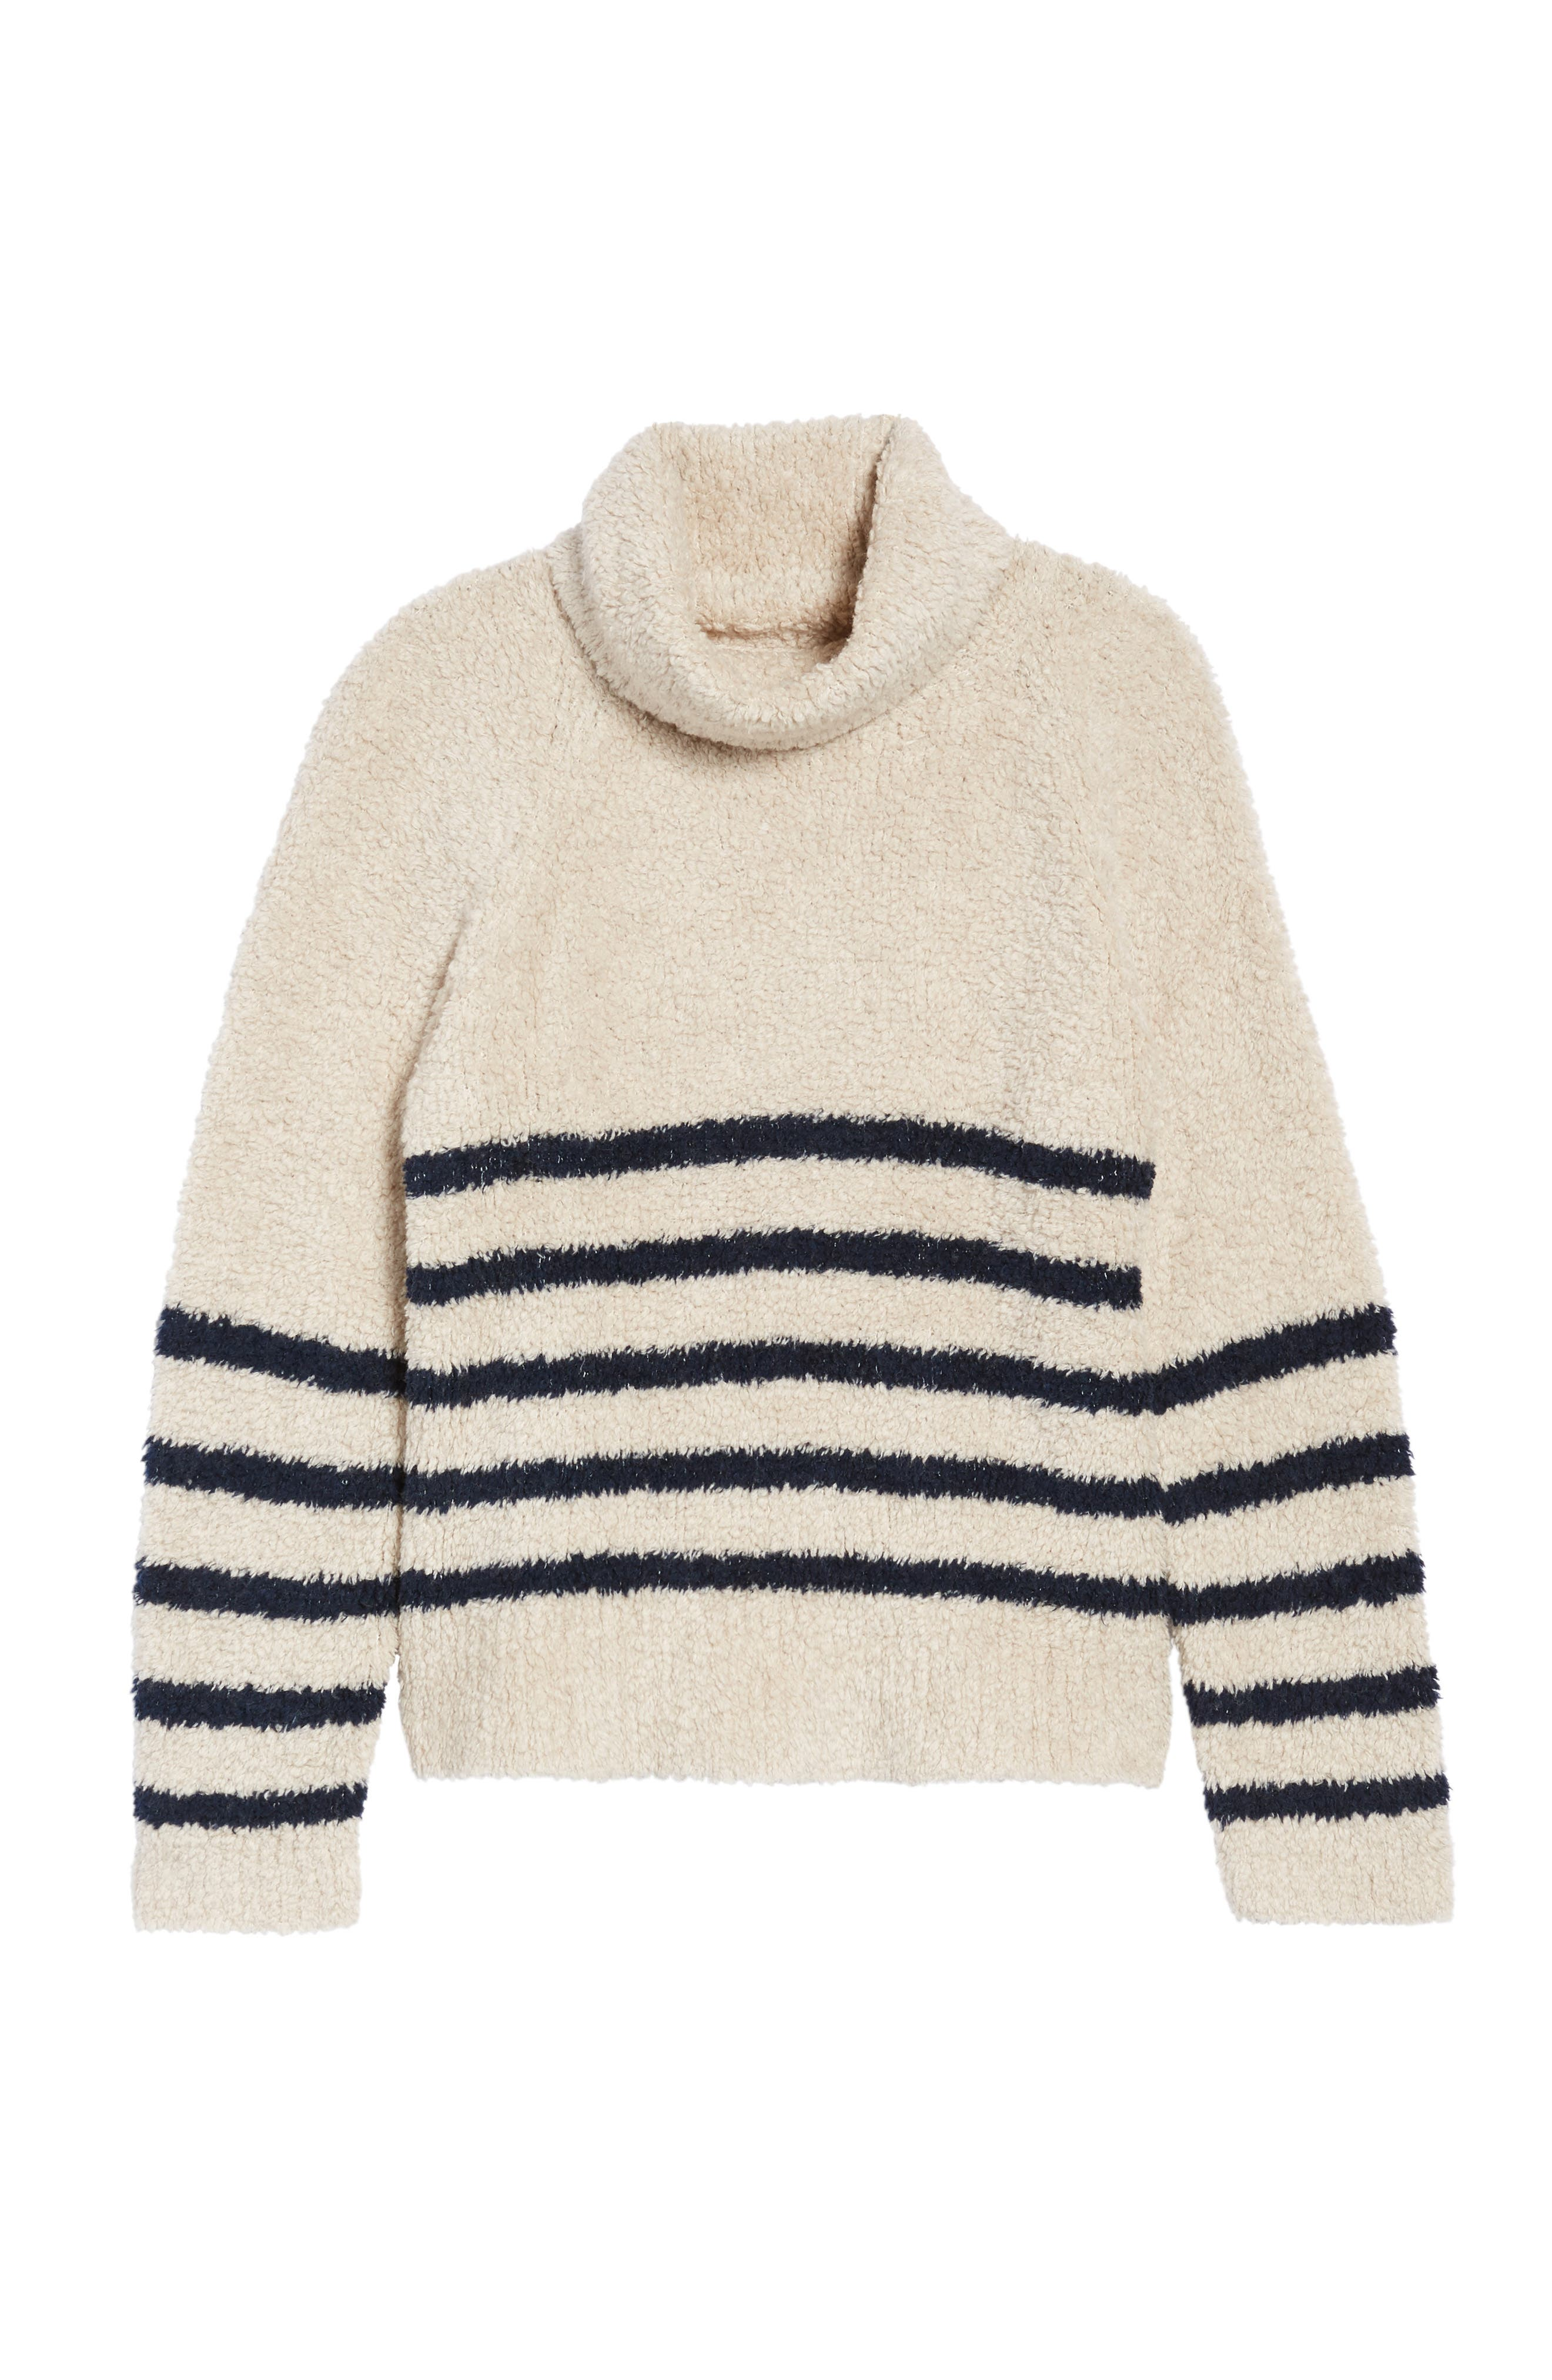 Mariner Stripe Turtleneck Sweater,                             Alternate thumbnail 6, color,                             Cloud Lining